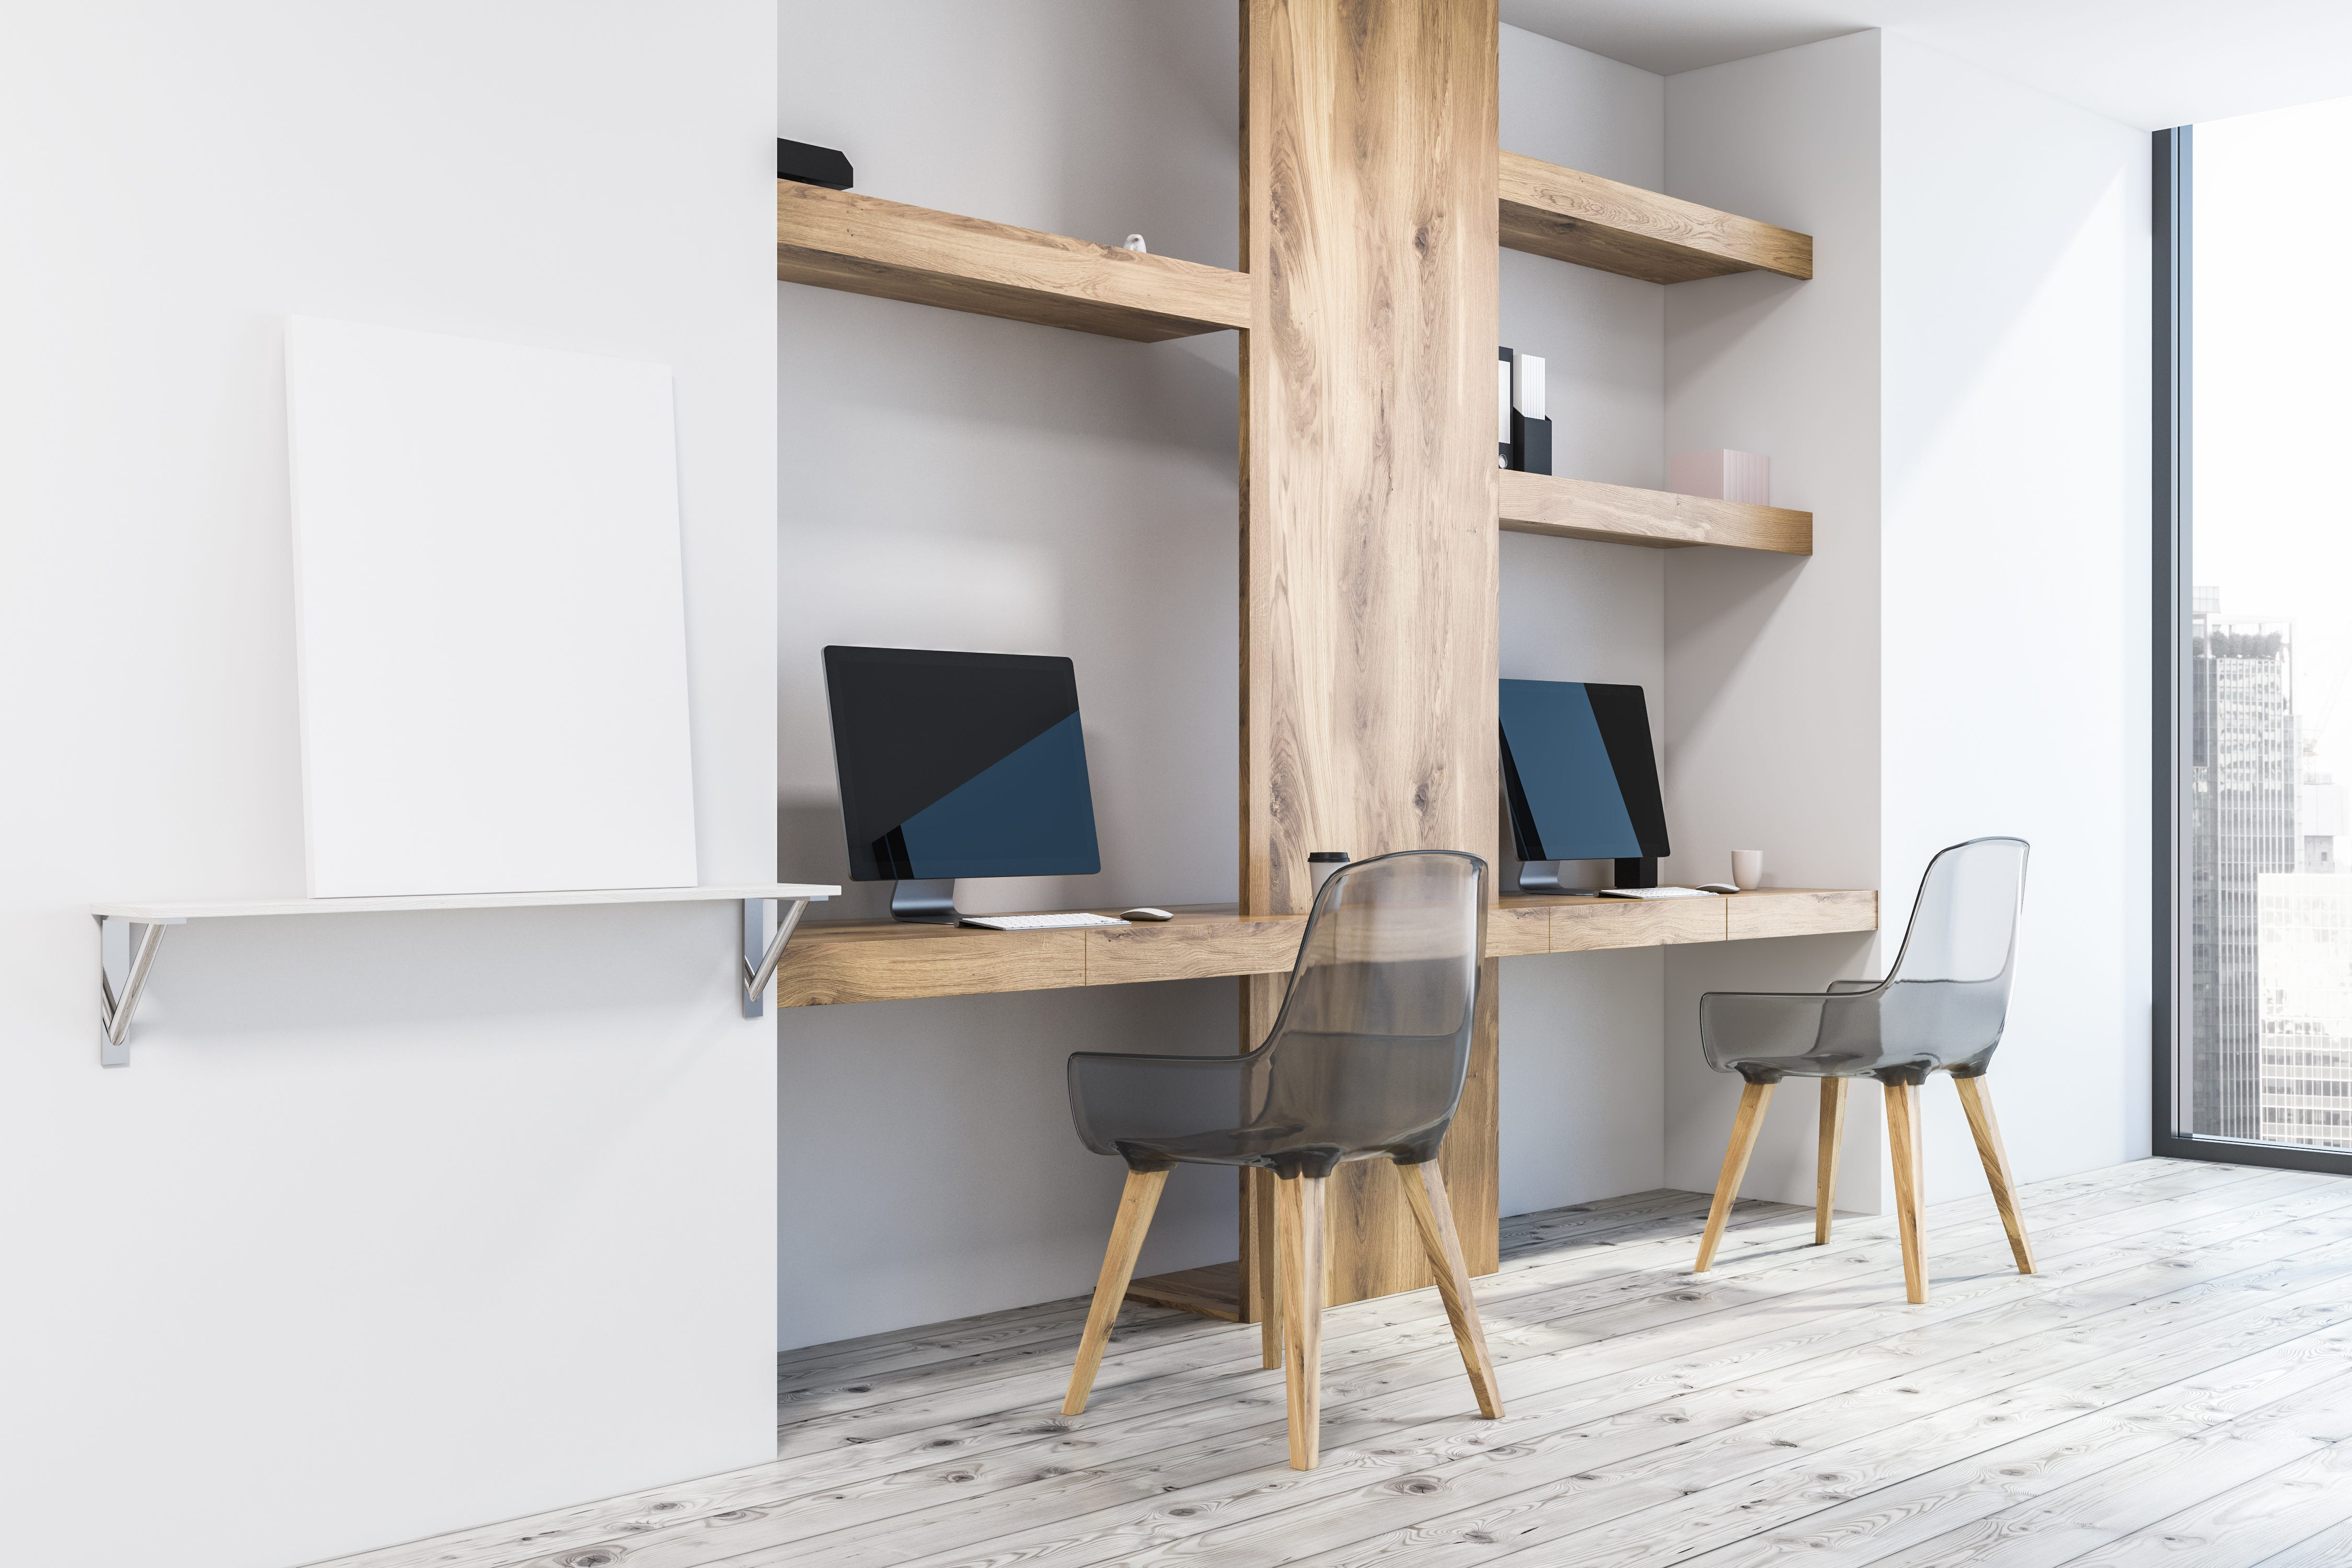 How to Build a Safe & Productive Home Office